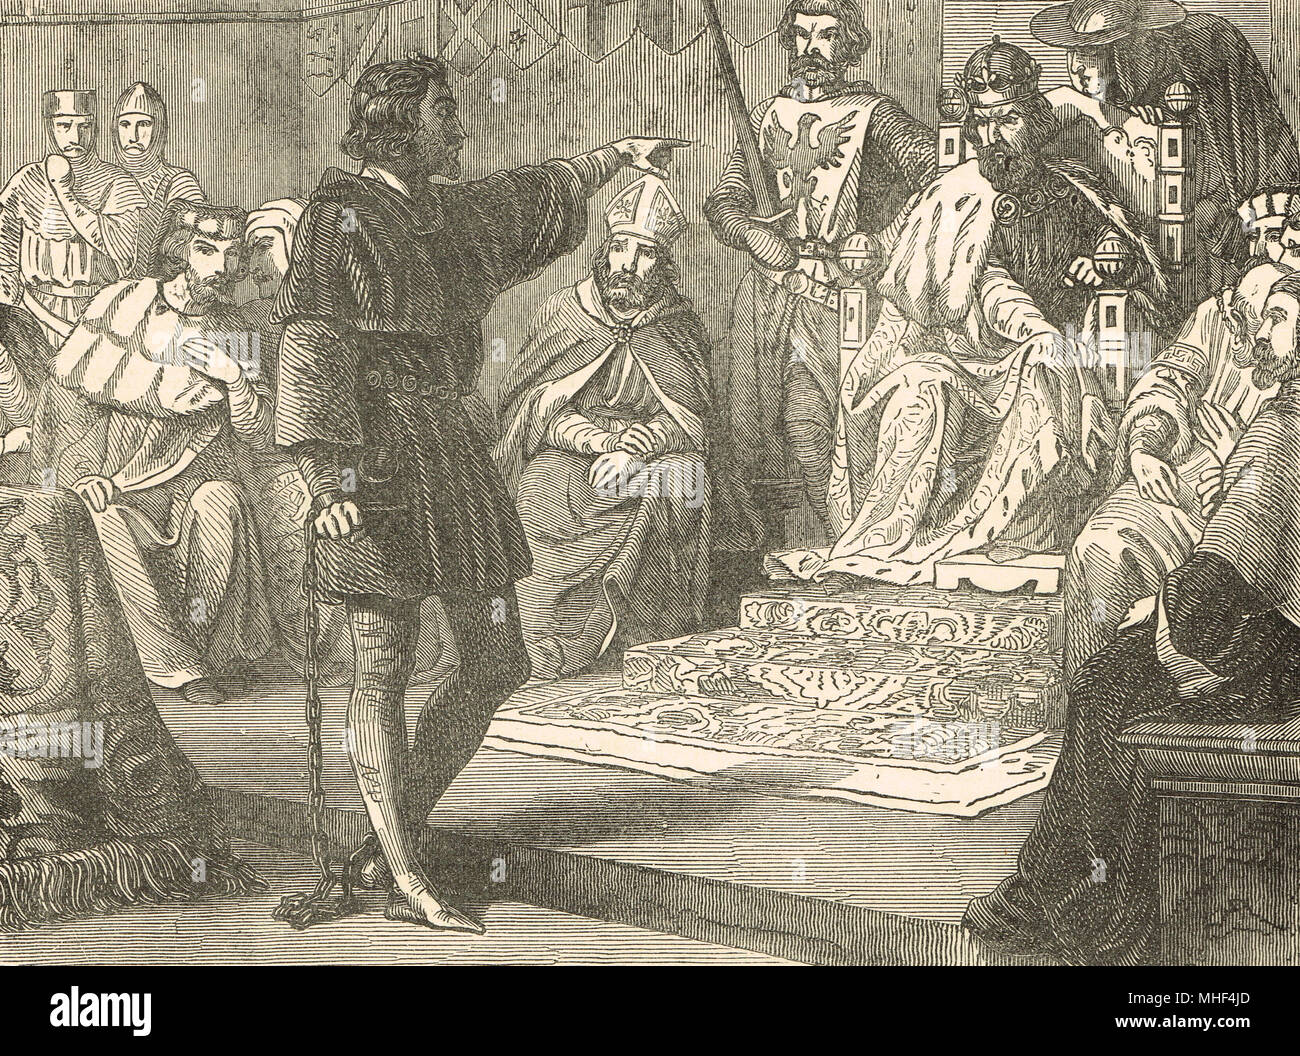 King Richard I refusing to show deference to Henry VI, Holy Roman Emperor, 1193, before the diet of the German Empire, Imperial city of  Speyer, Germany, Trial of Richard I - Stock Image